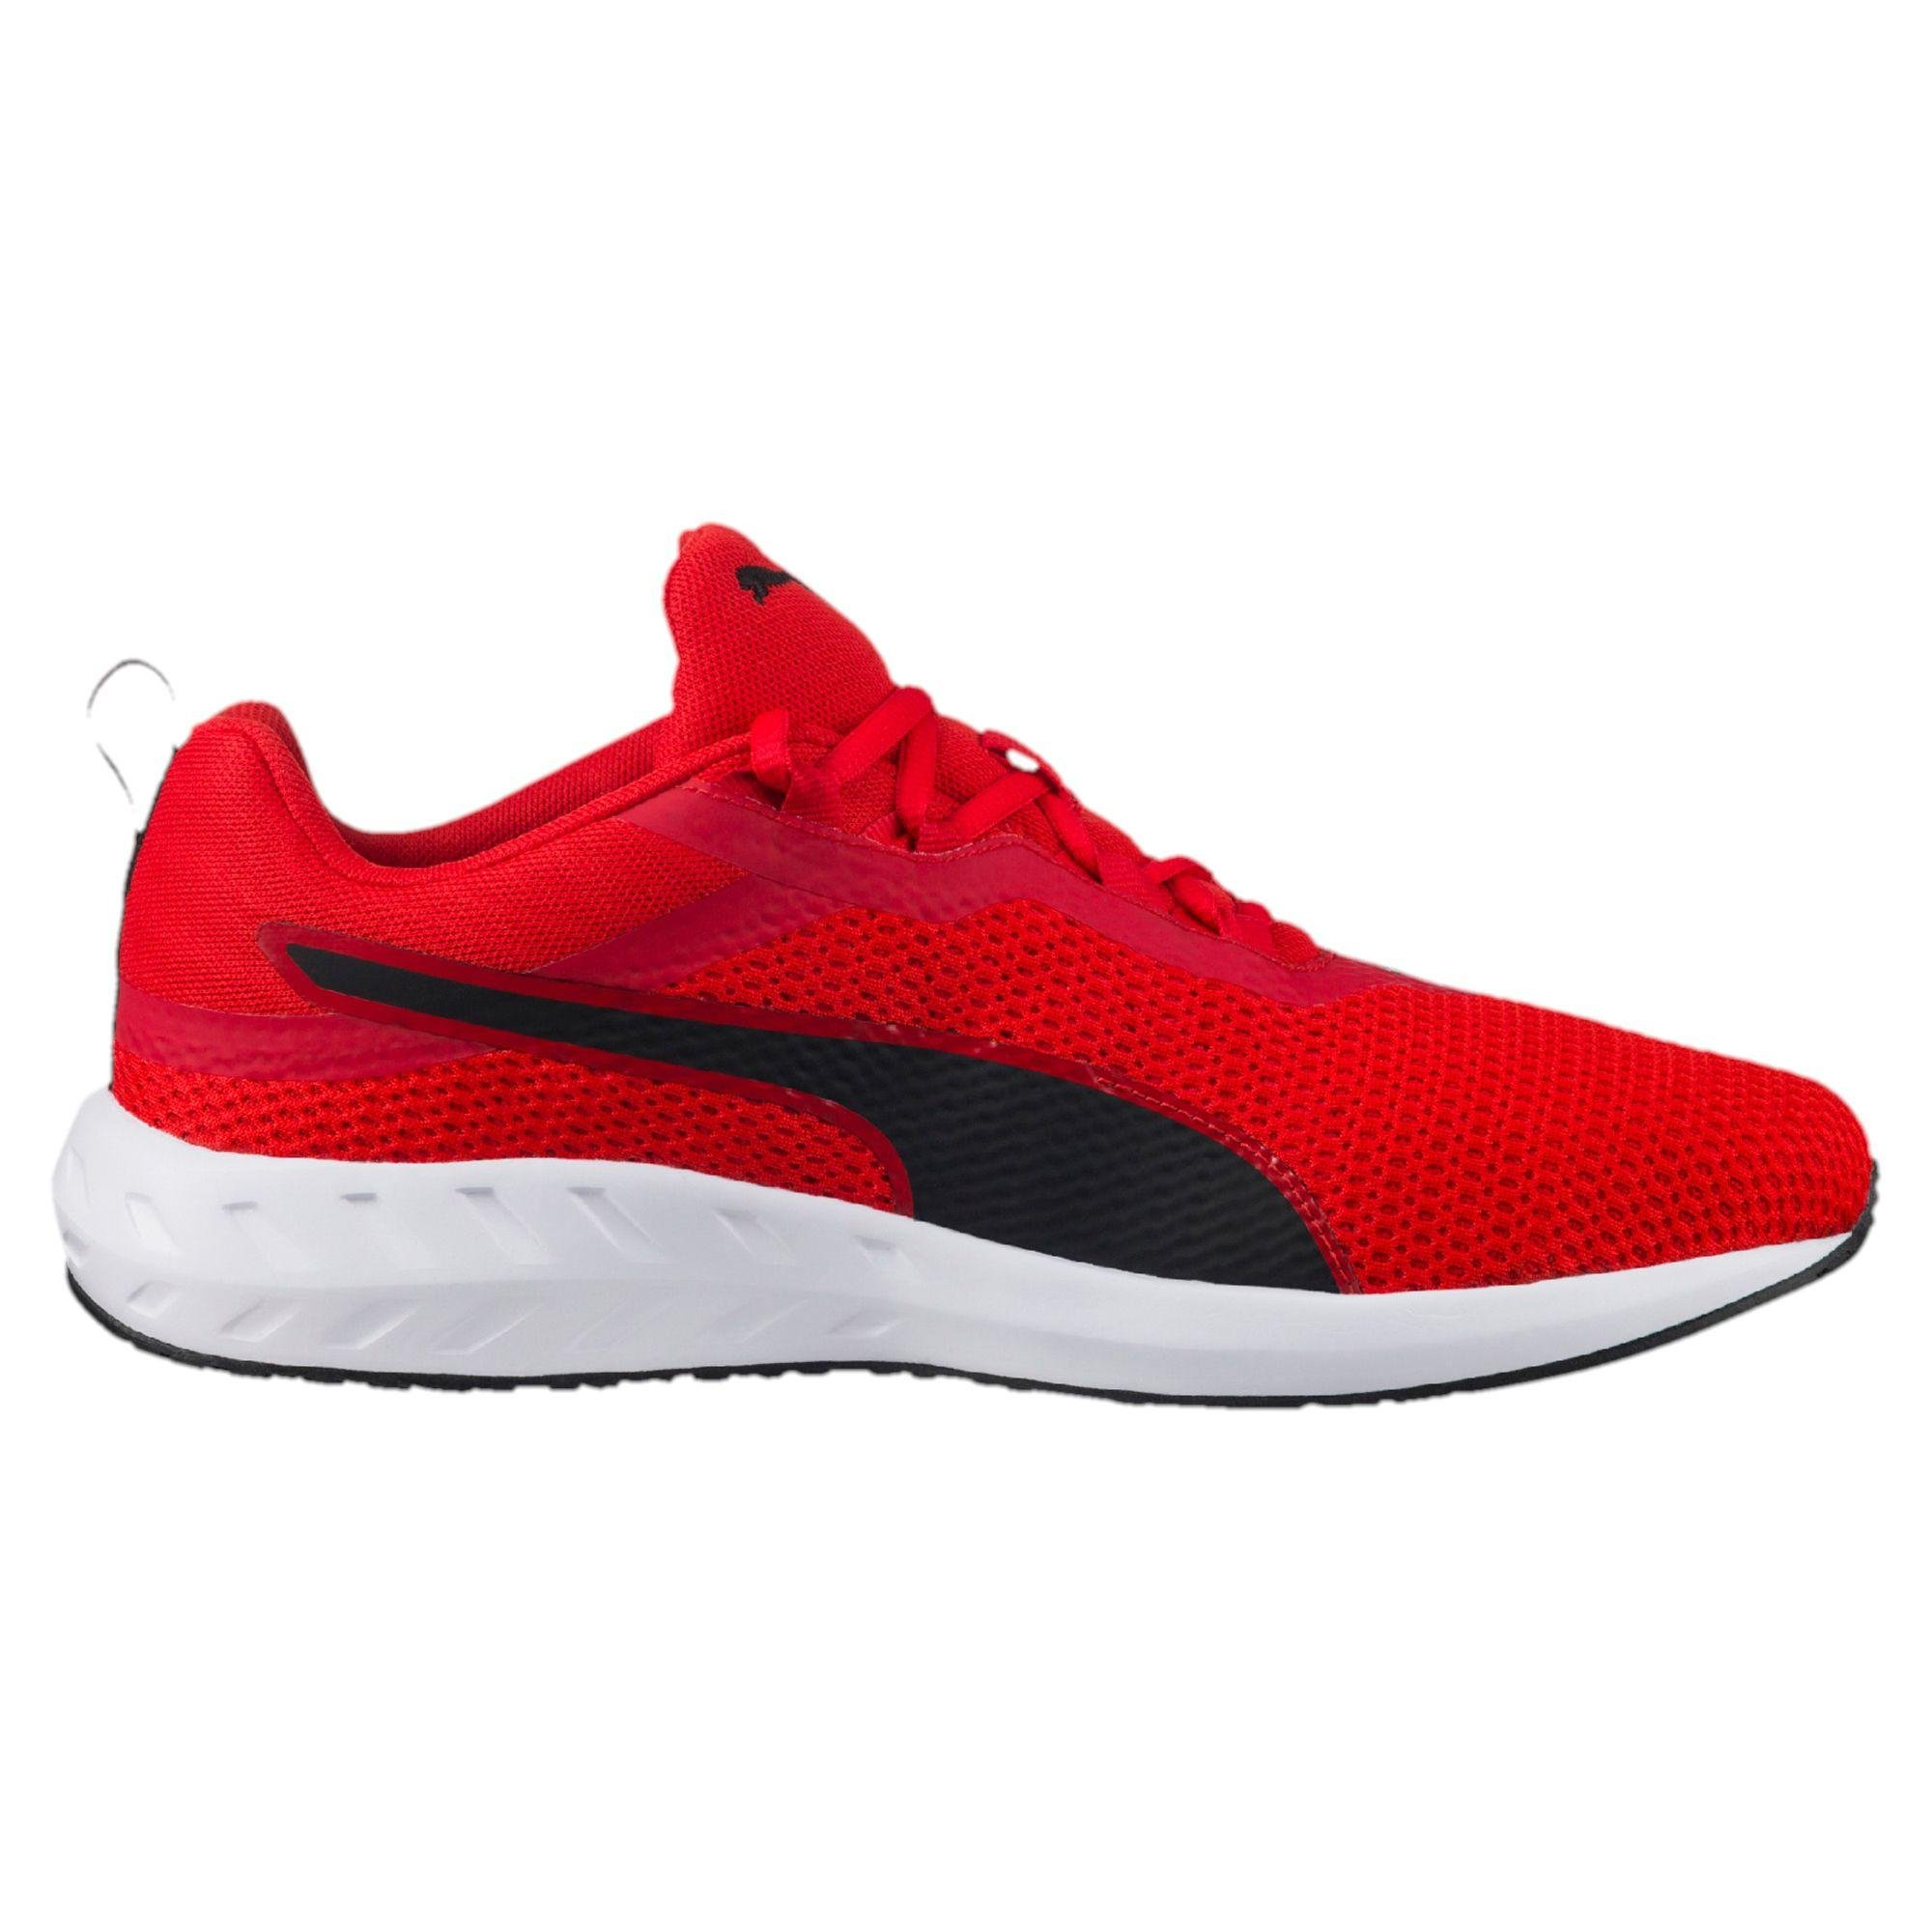 bc3b823c6da991 Lyst - PUMA Flare 2 Men s Running Shoes in Red for Men